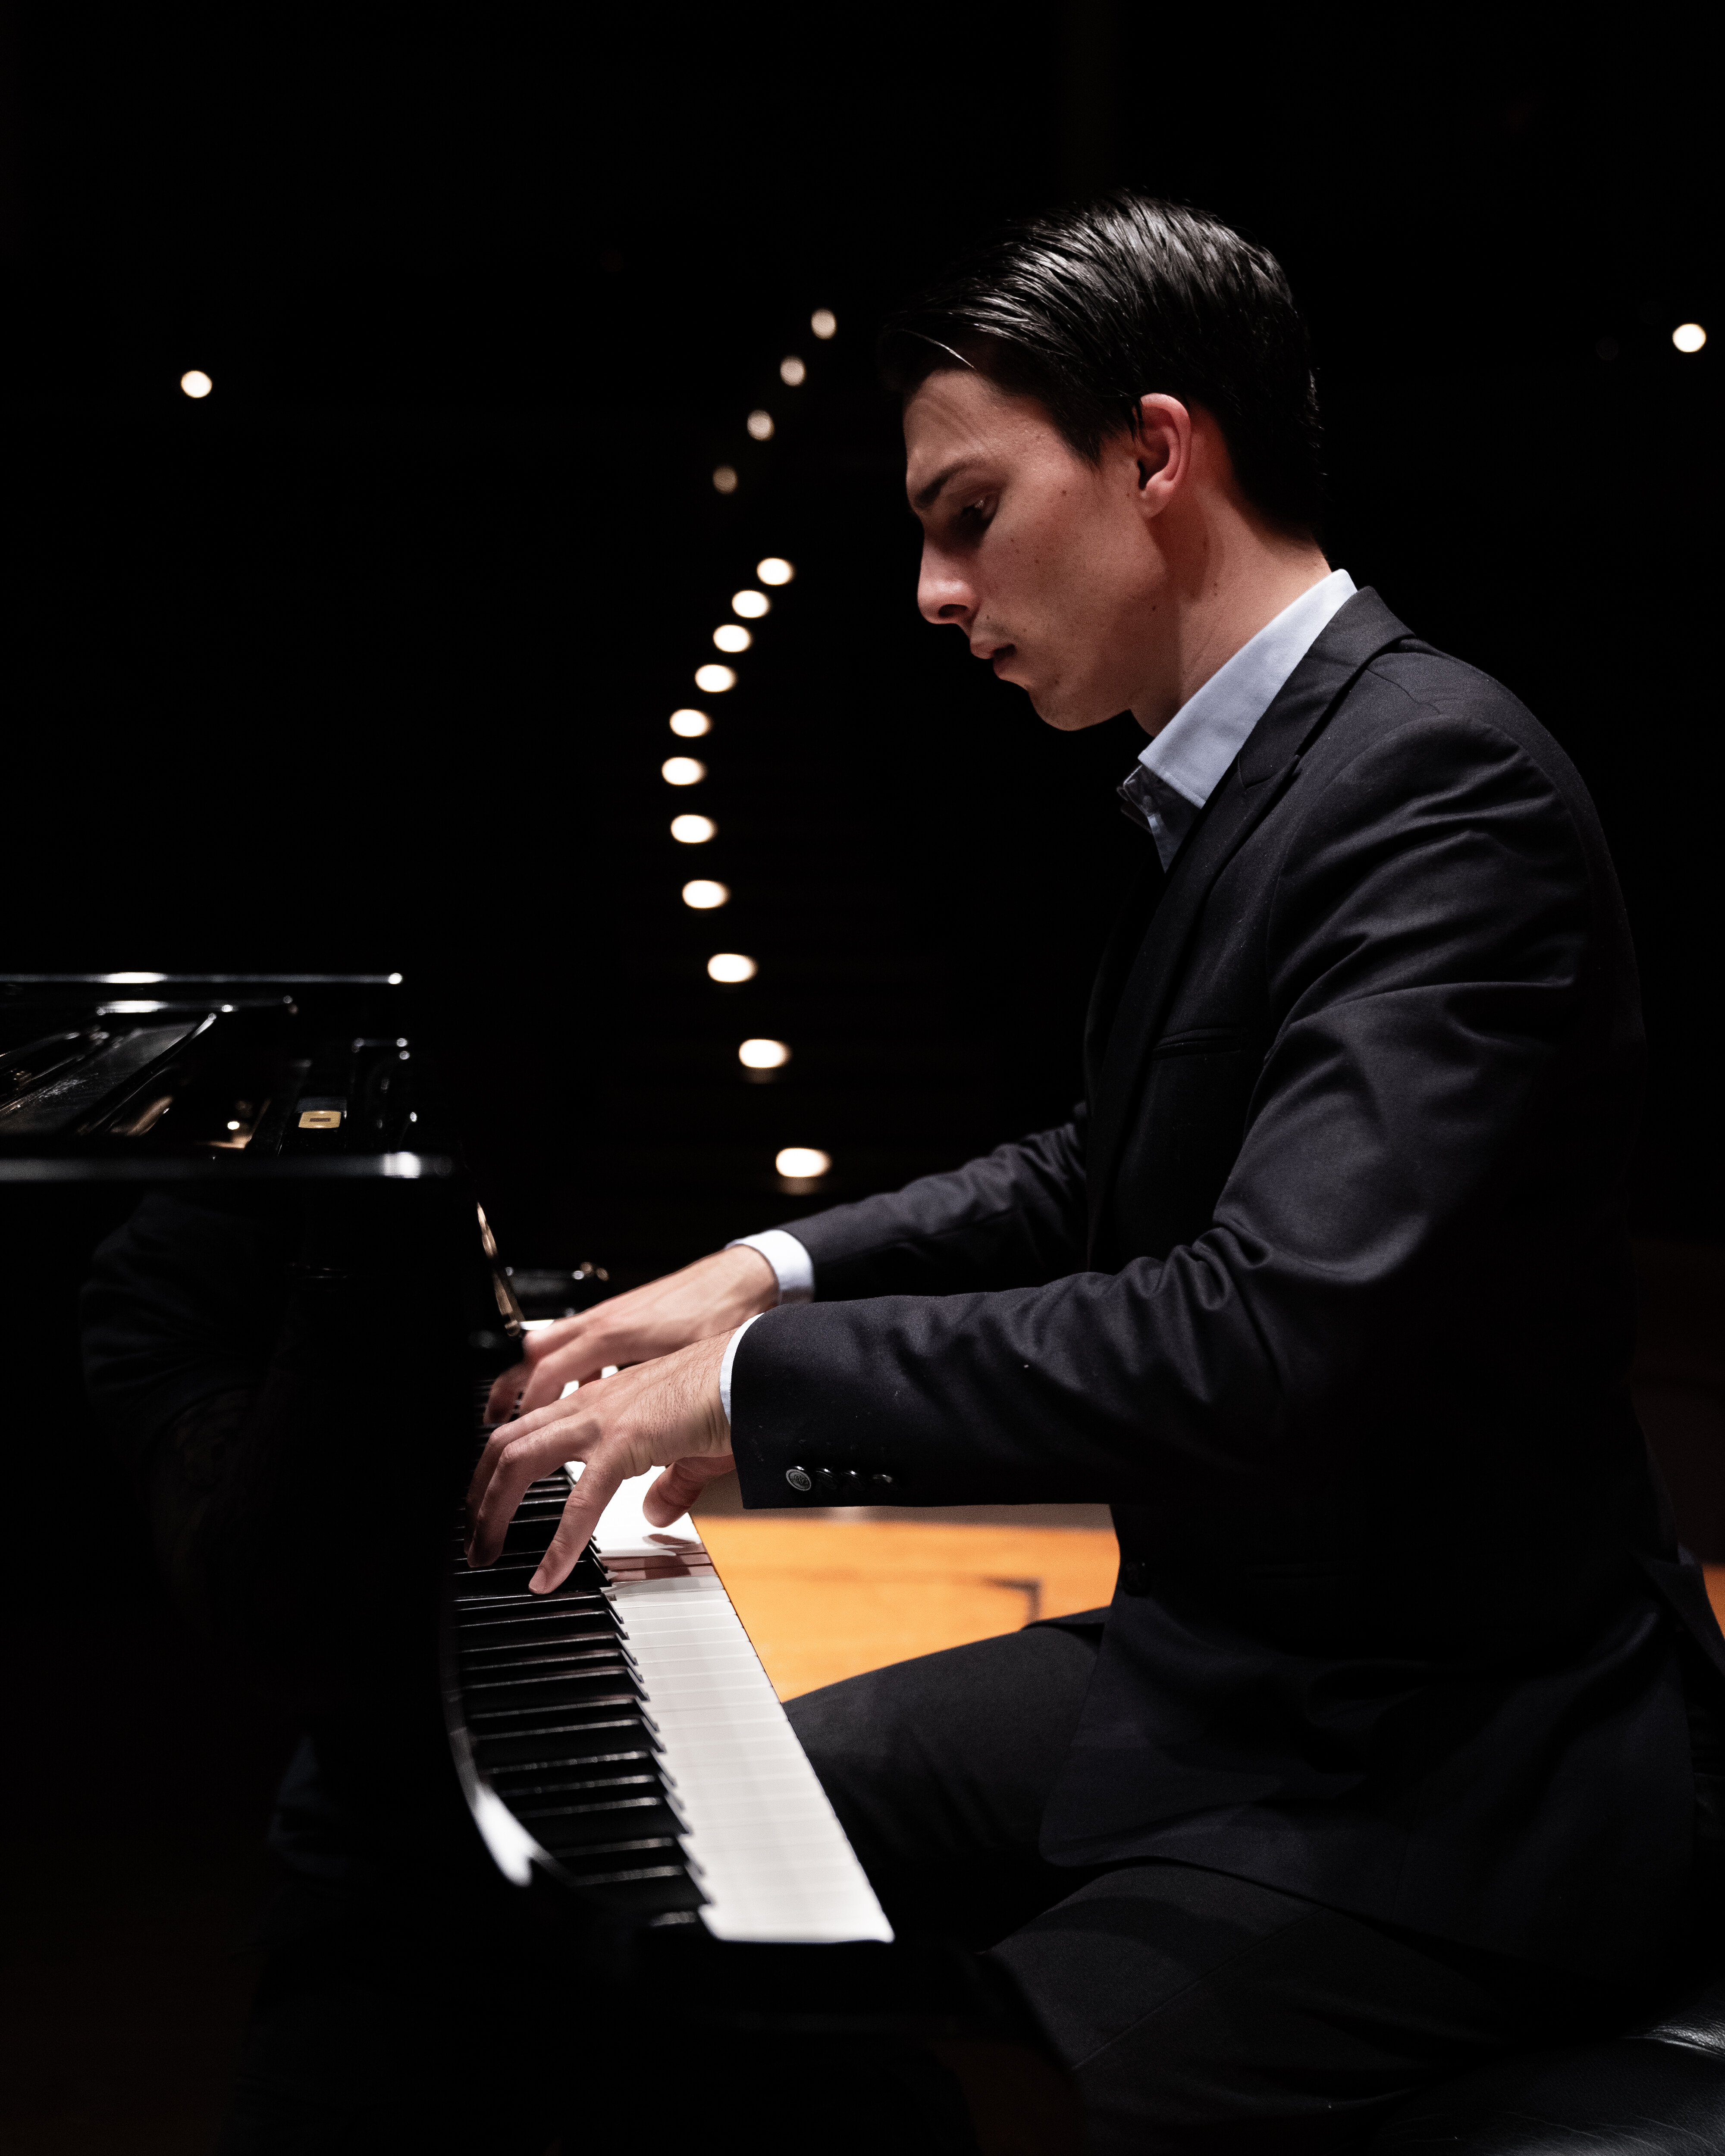 A pianist looking at his hands while playing piano in a dark concert hall.